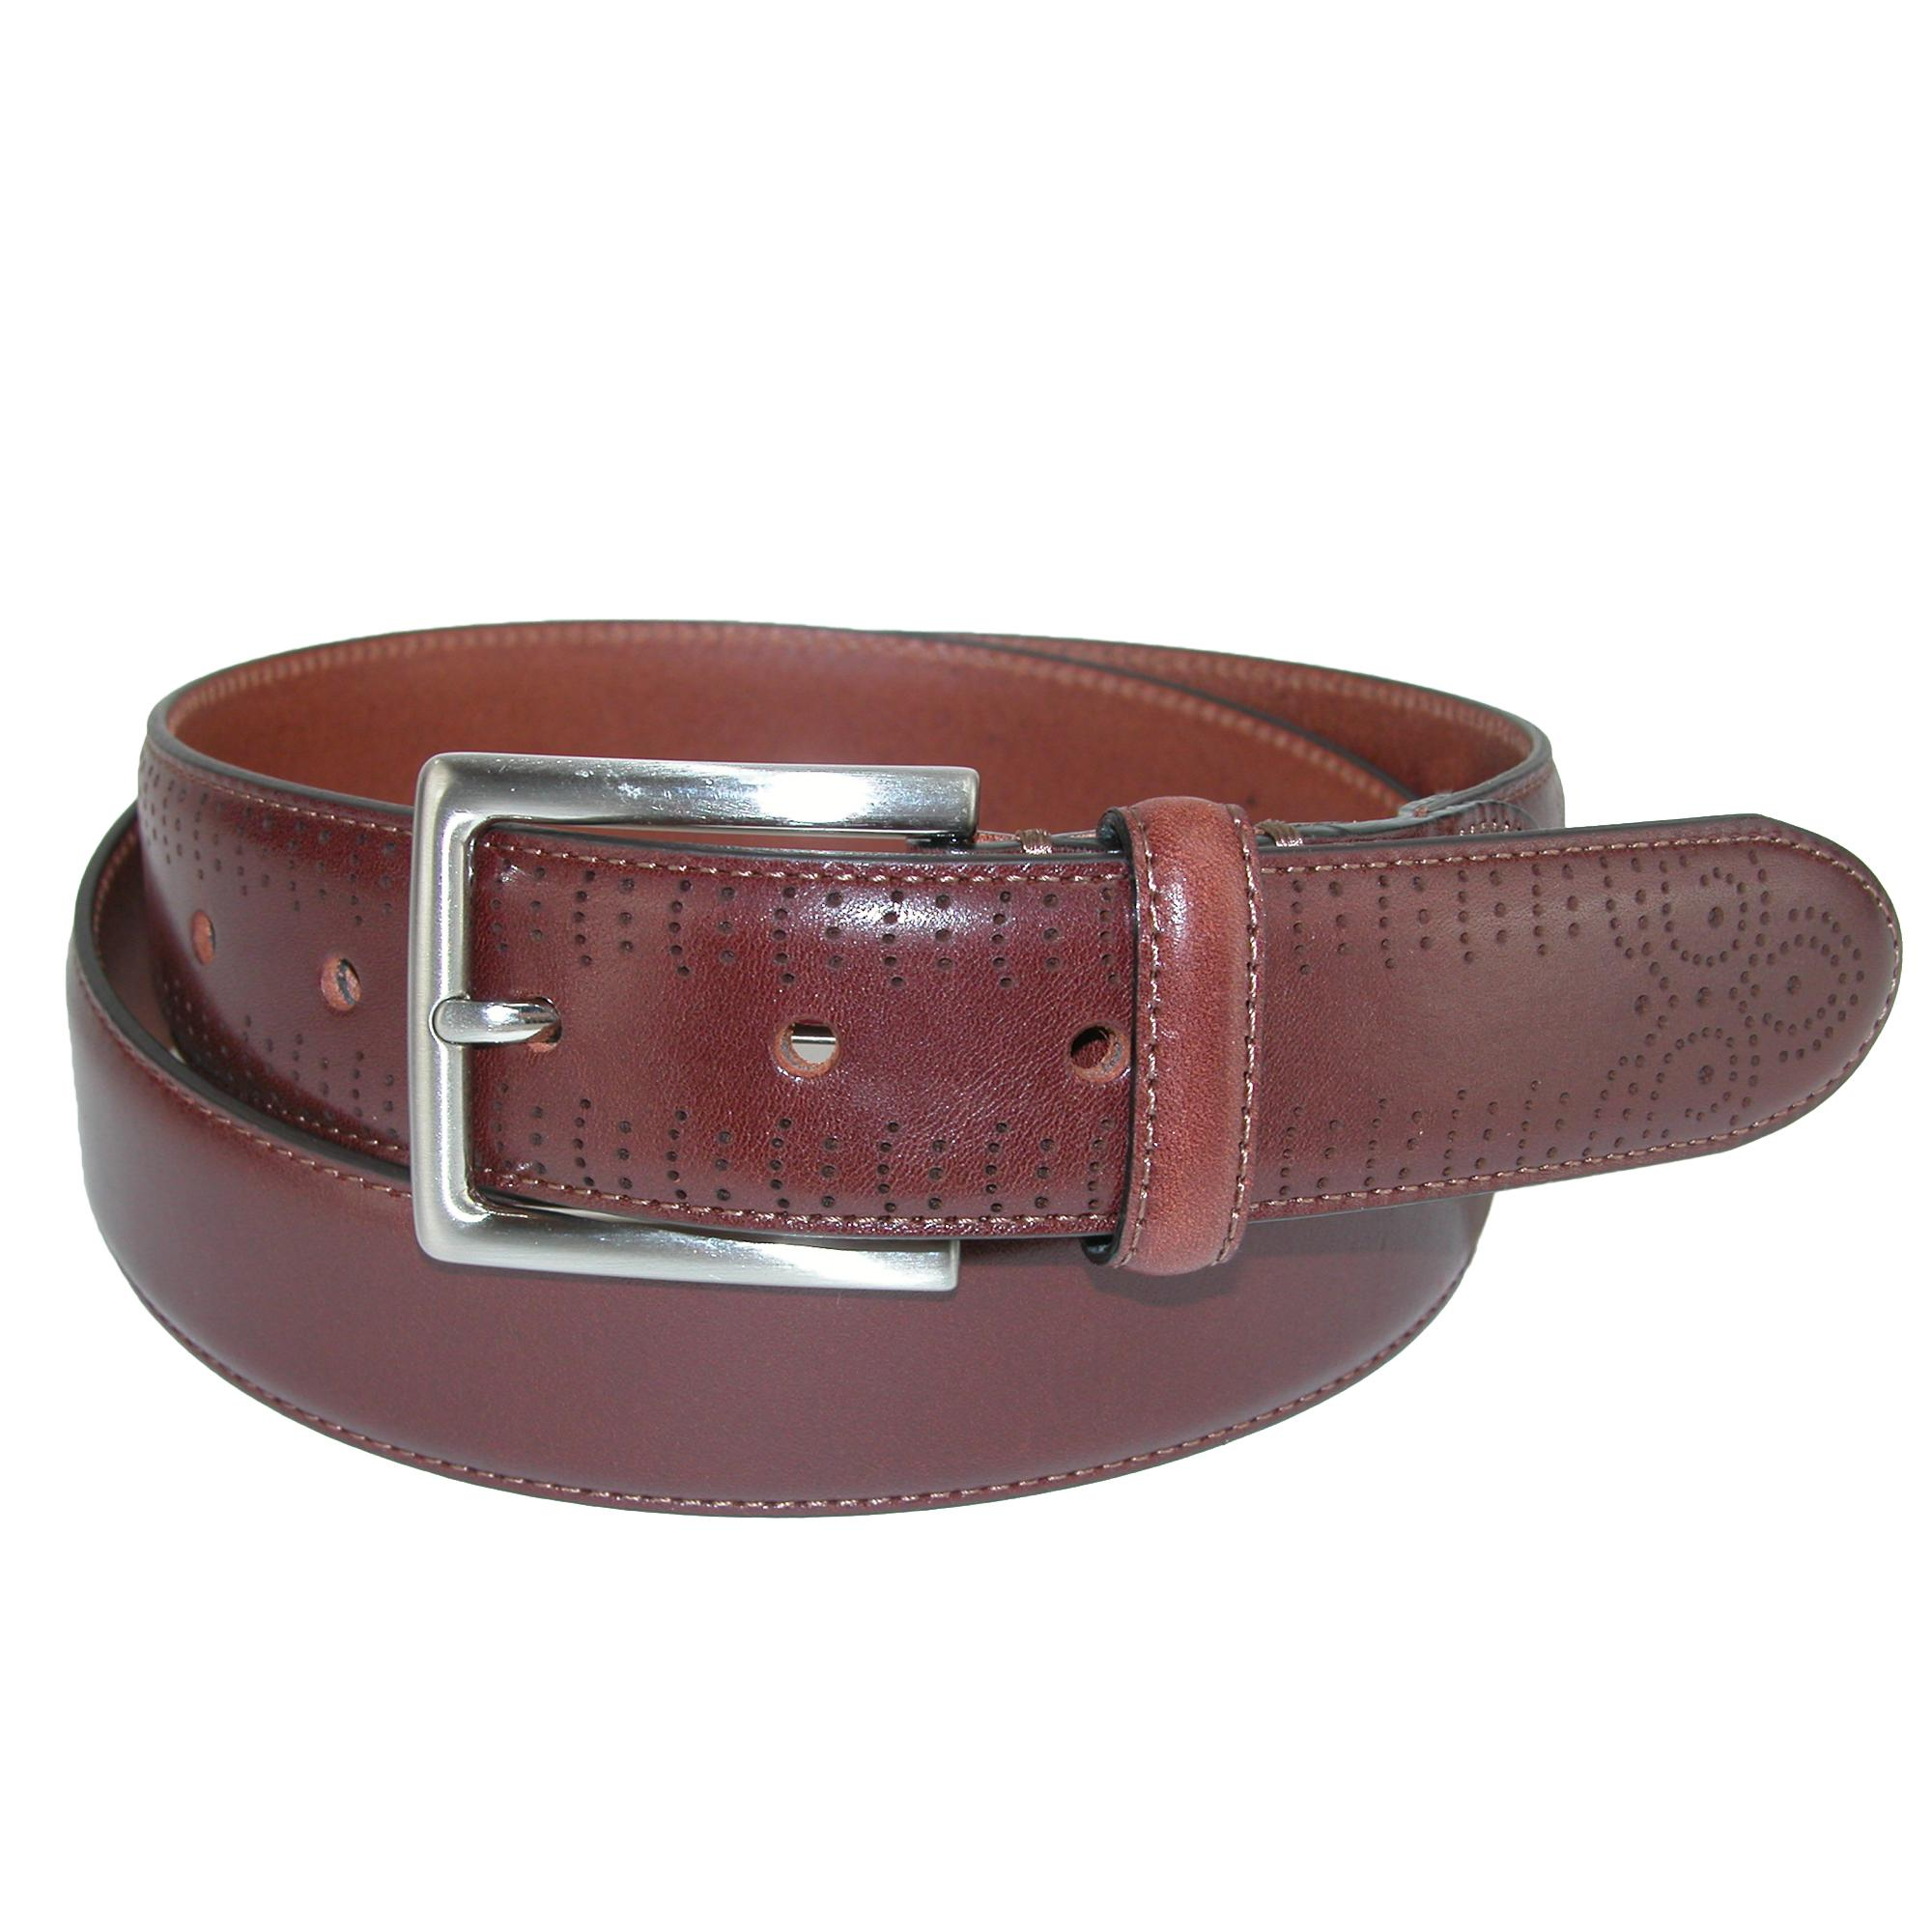 Ctm Mens Elastic Braided Belt With Covered Buckle (pack Of 2)